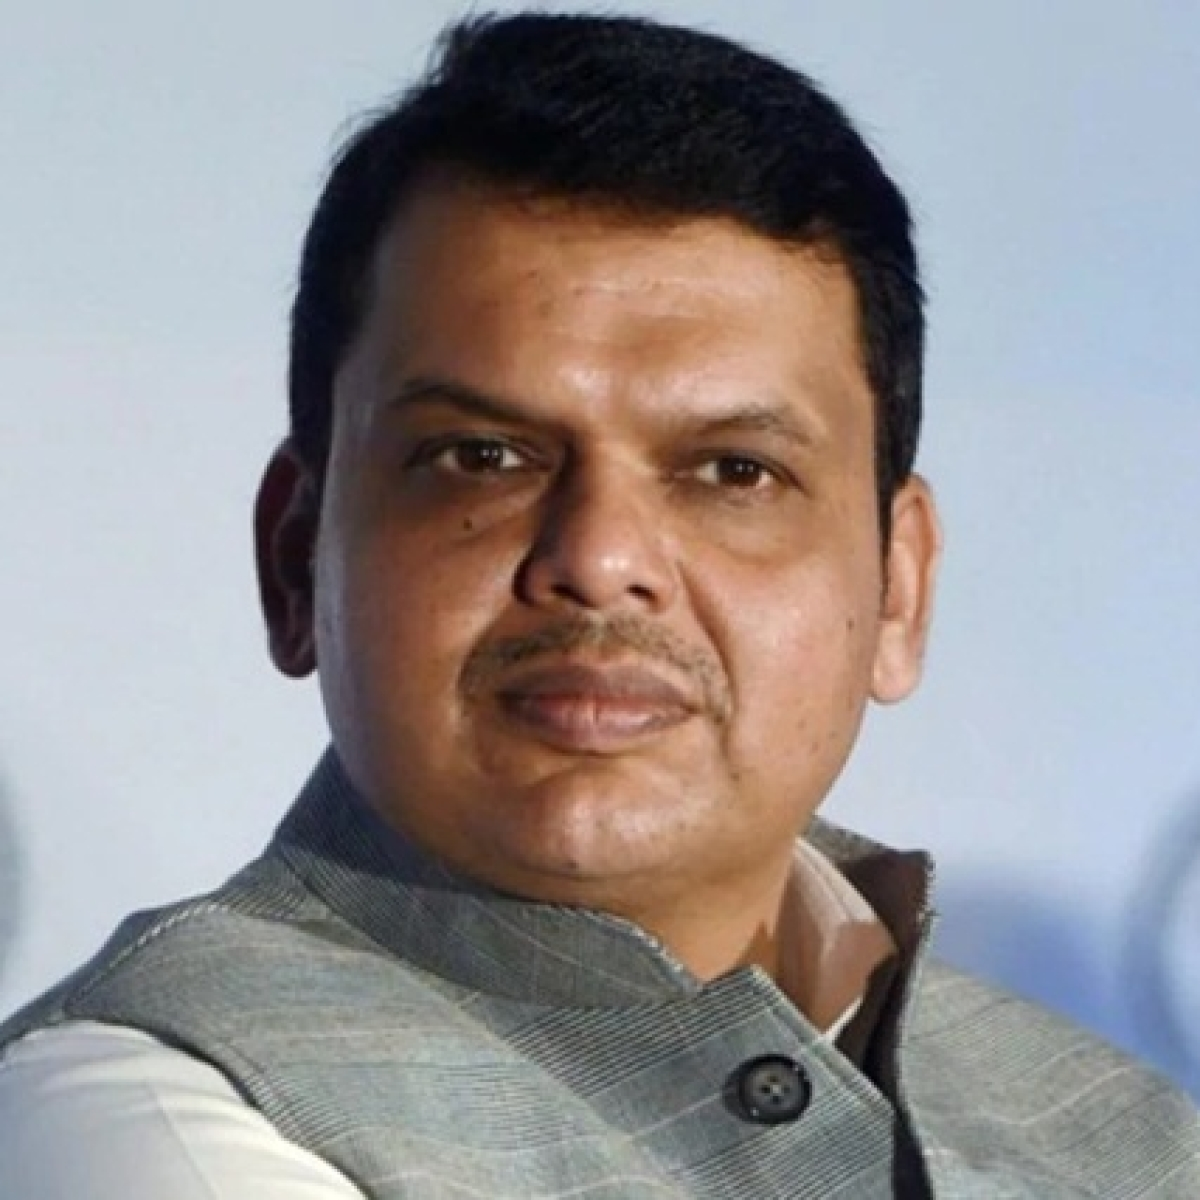 'Outgoing chief minister': Shiv Sena indirectly asks Devendra Fadnavis to step down